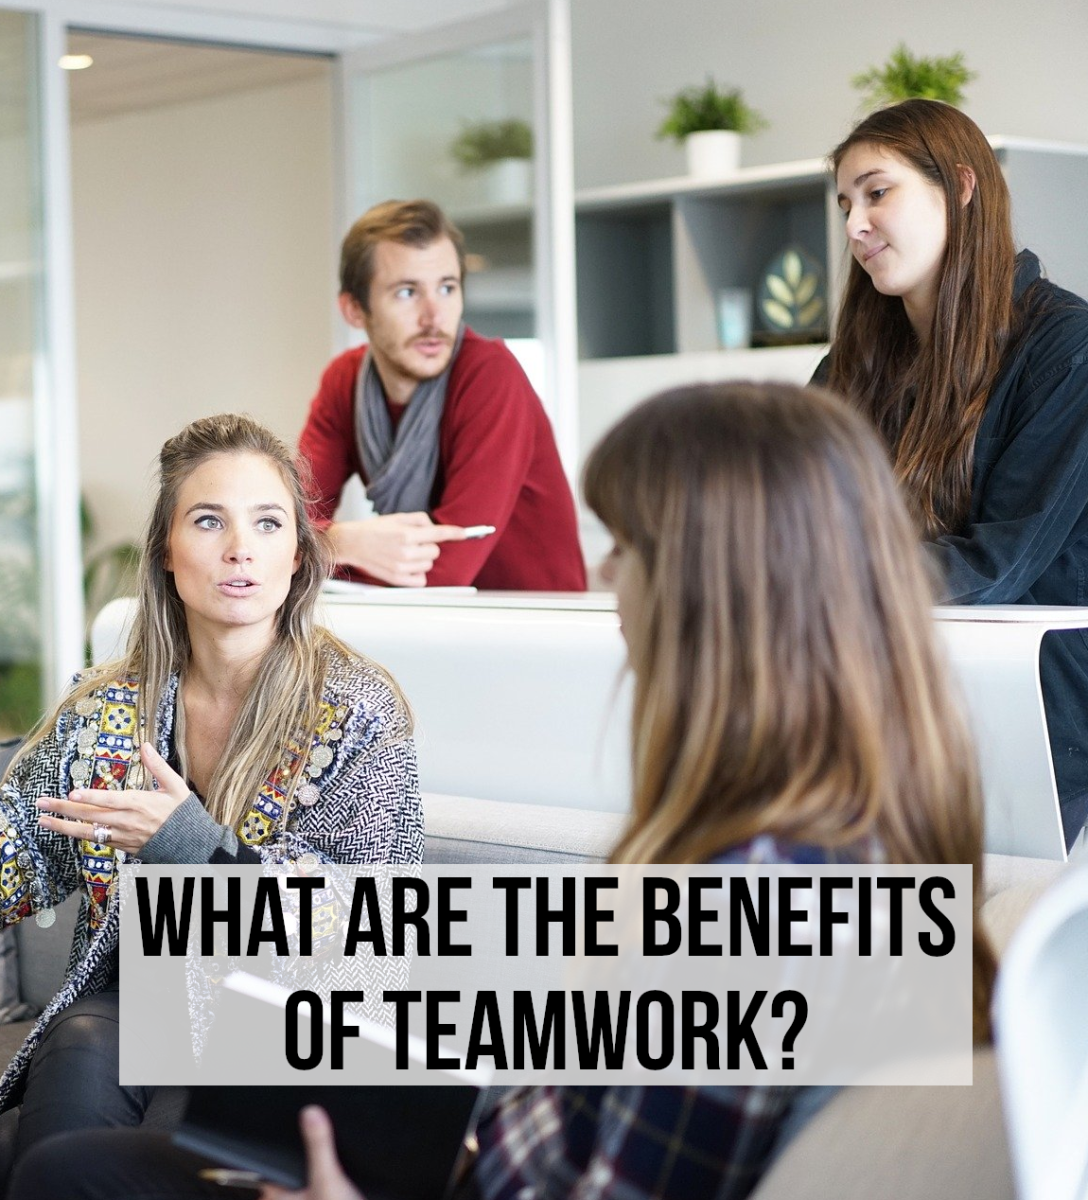 Although independent work by individuals is necessary at times, the benefits of working as a coordinated group cannot be underestimated.